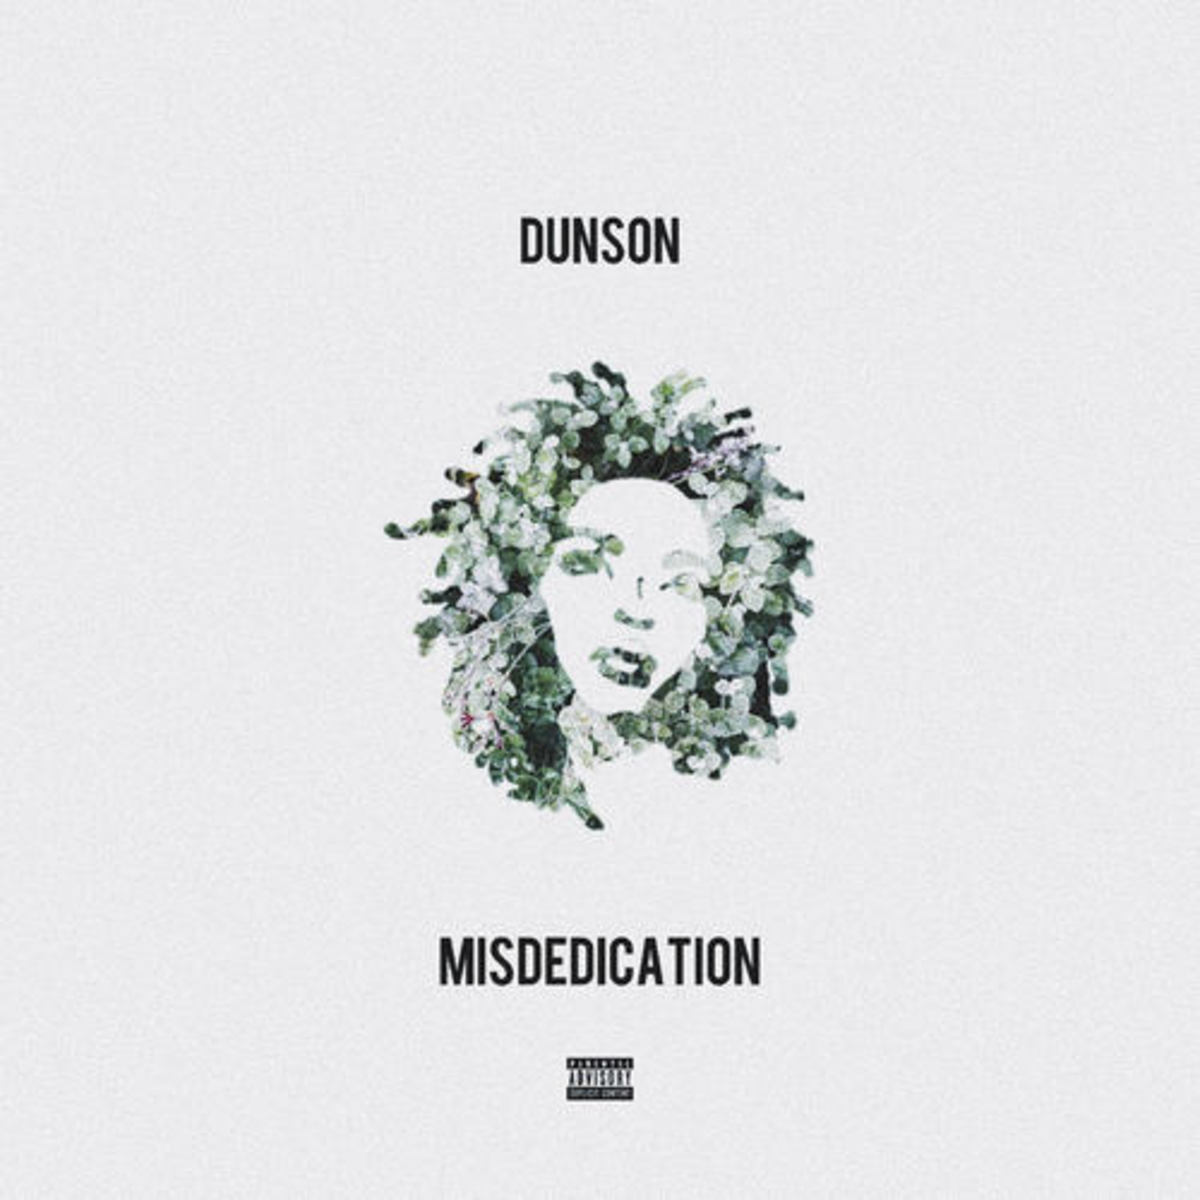 dunson-miseducation.jpg